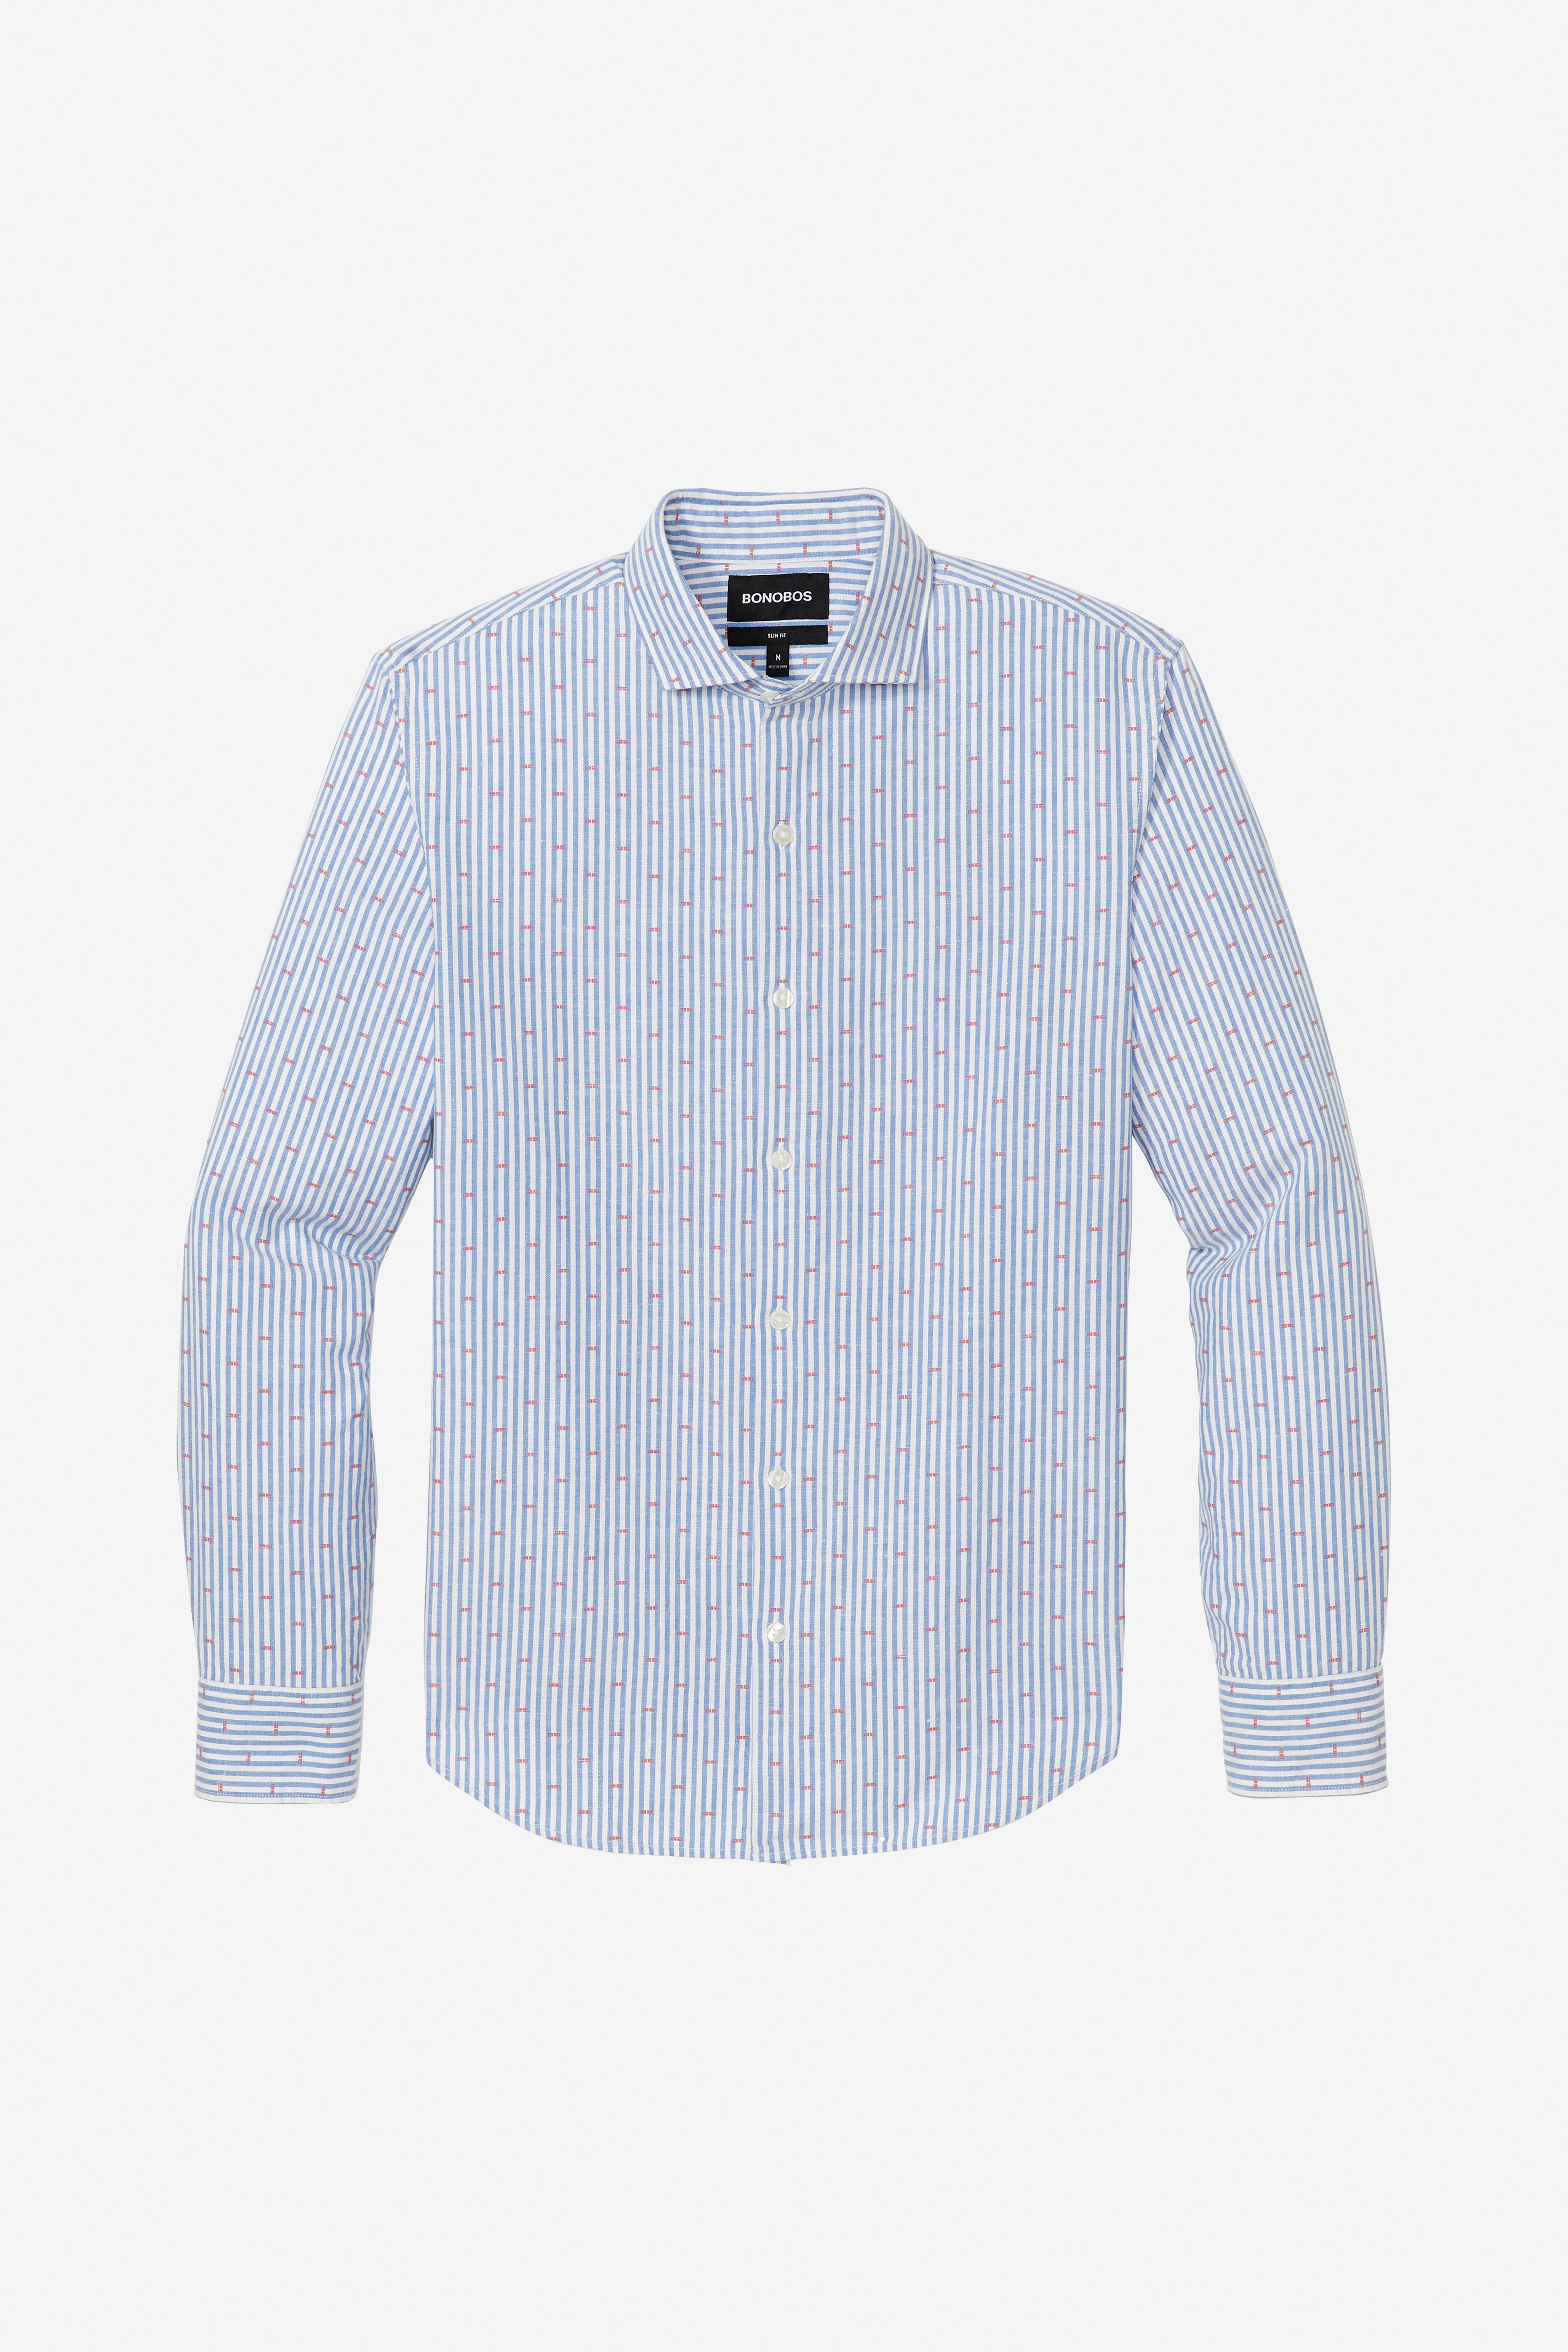 b18779fb29ce3f Everything On Sale  Men s Clothing